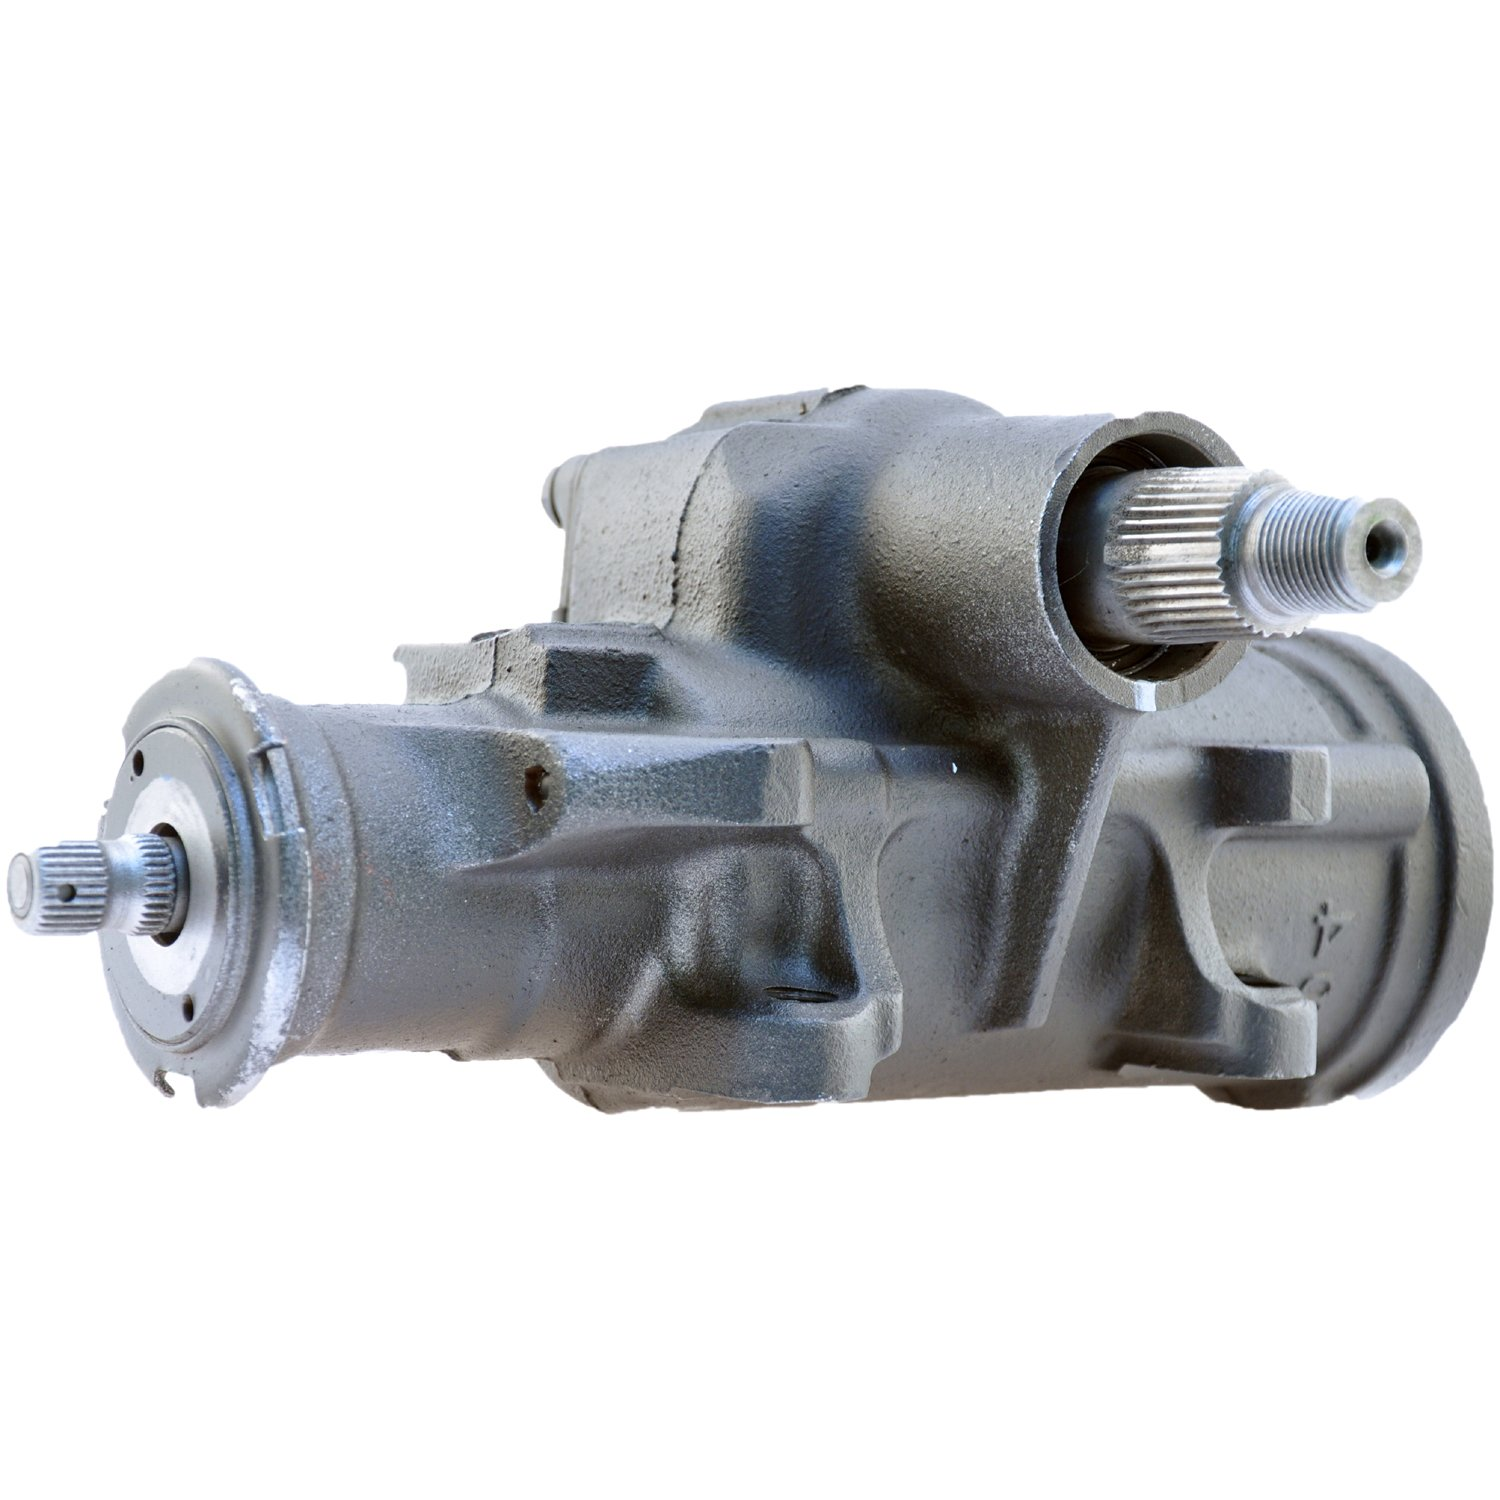 ACDelco 36G0071 Professional Steering Gear without Pitman Arm Remanufactured